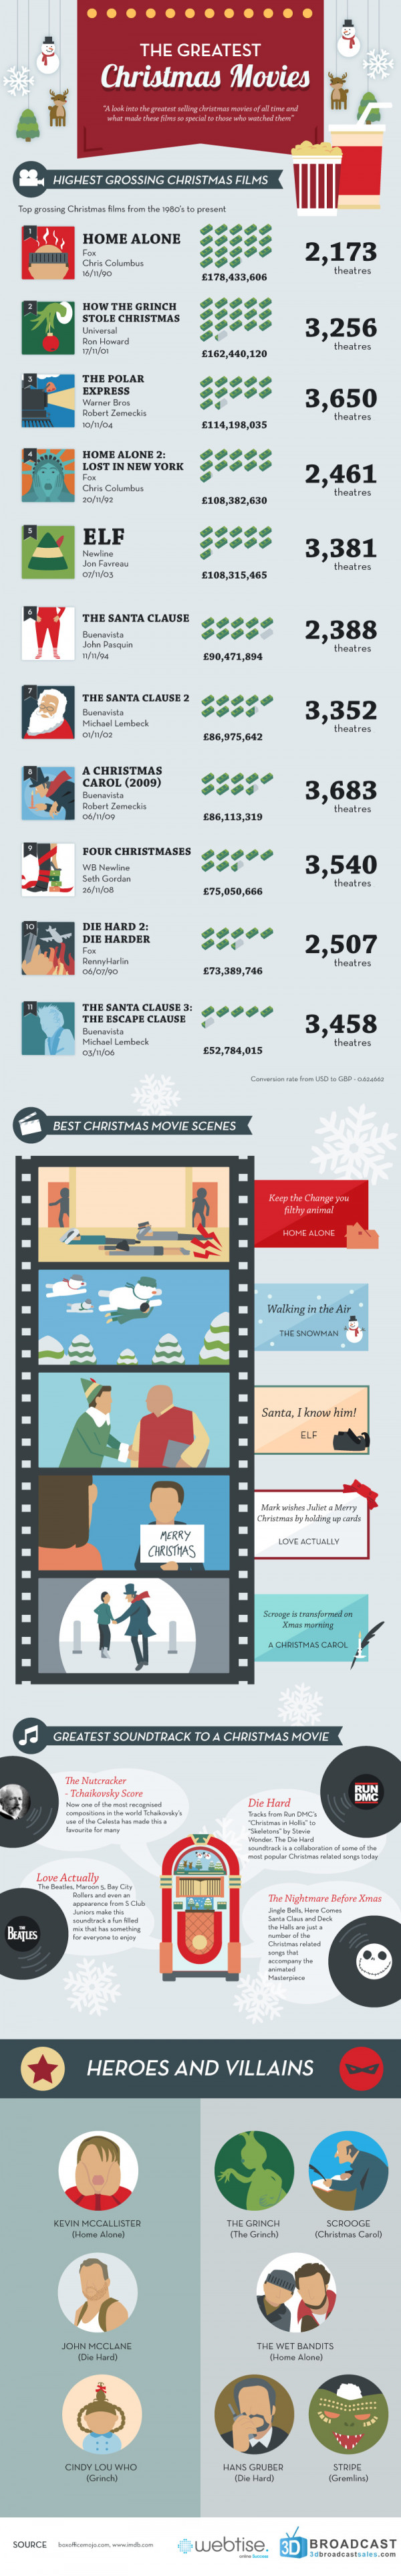 The Greatest Christmas Movies